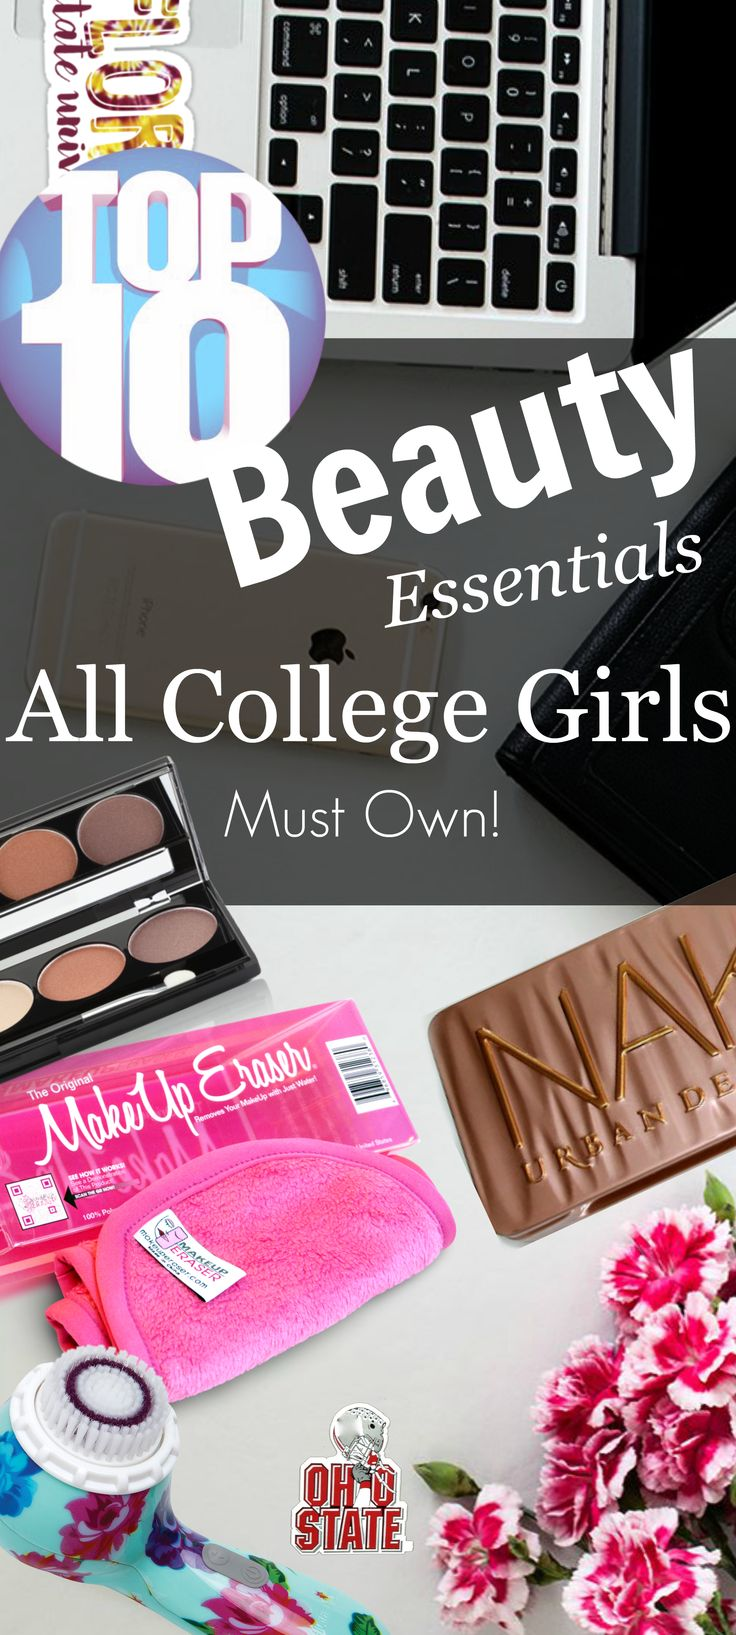 10 Beauty Essentials All College Girls Must Own By Barbie's Beauty Bits